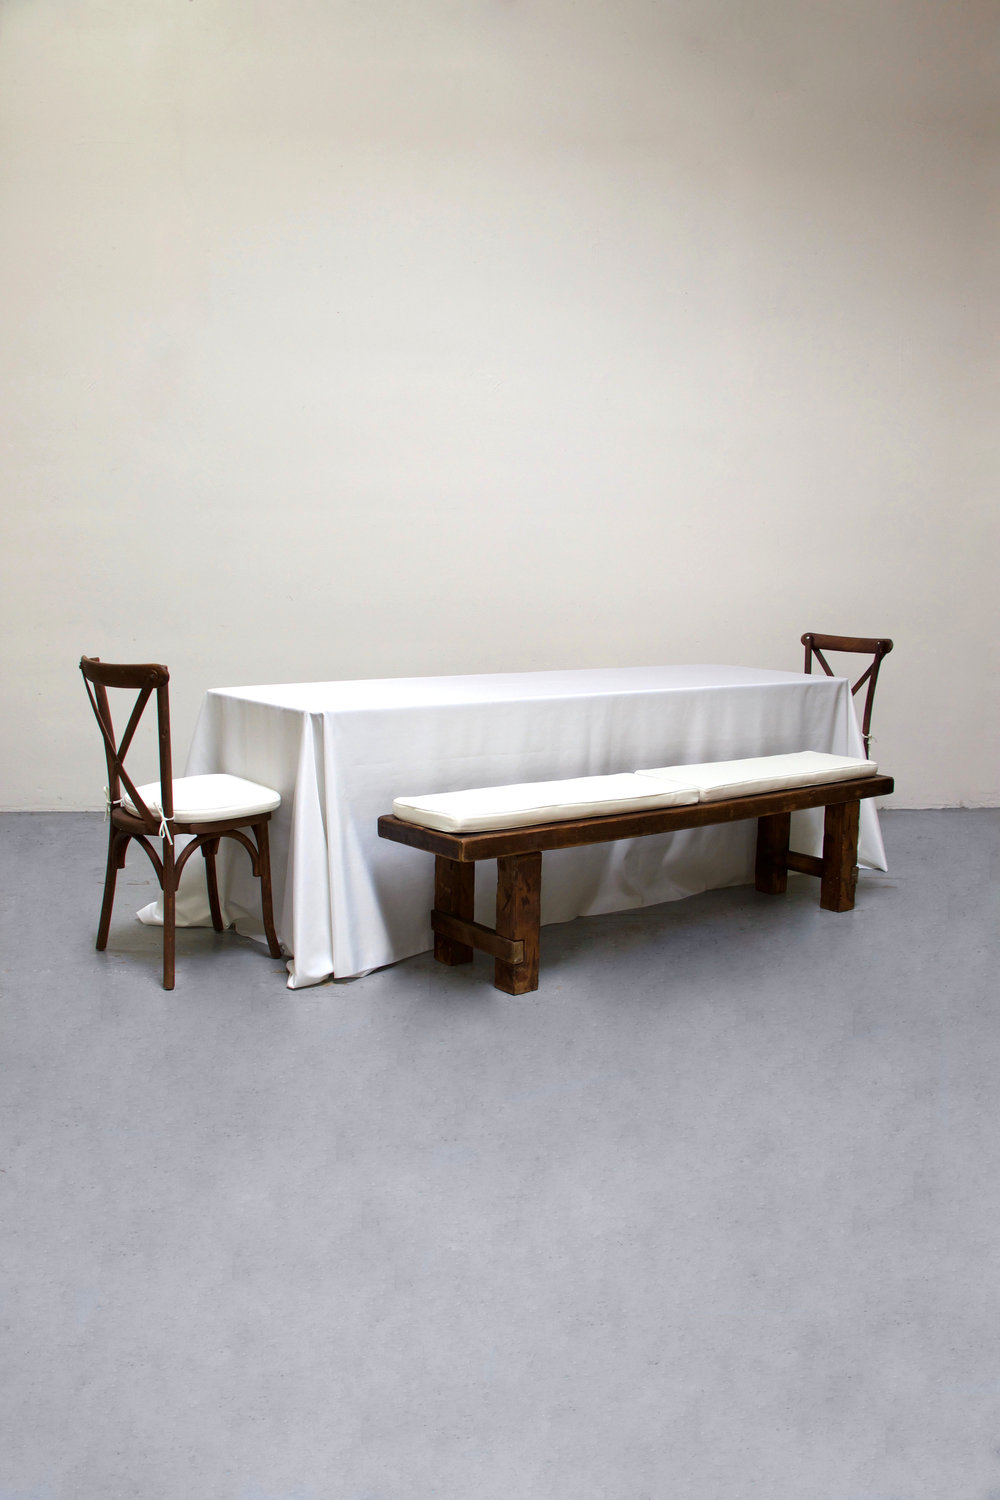 $100 1 Banquet Table with 2 Long Benches & 2 Cross-Back Chairs